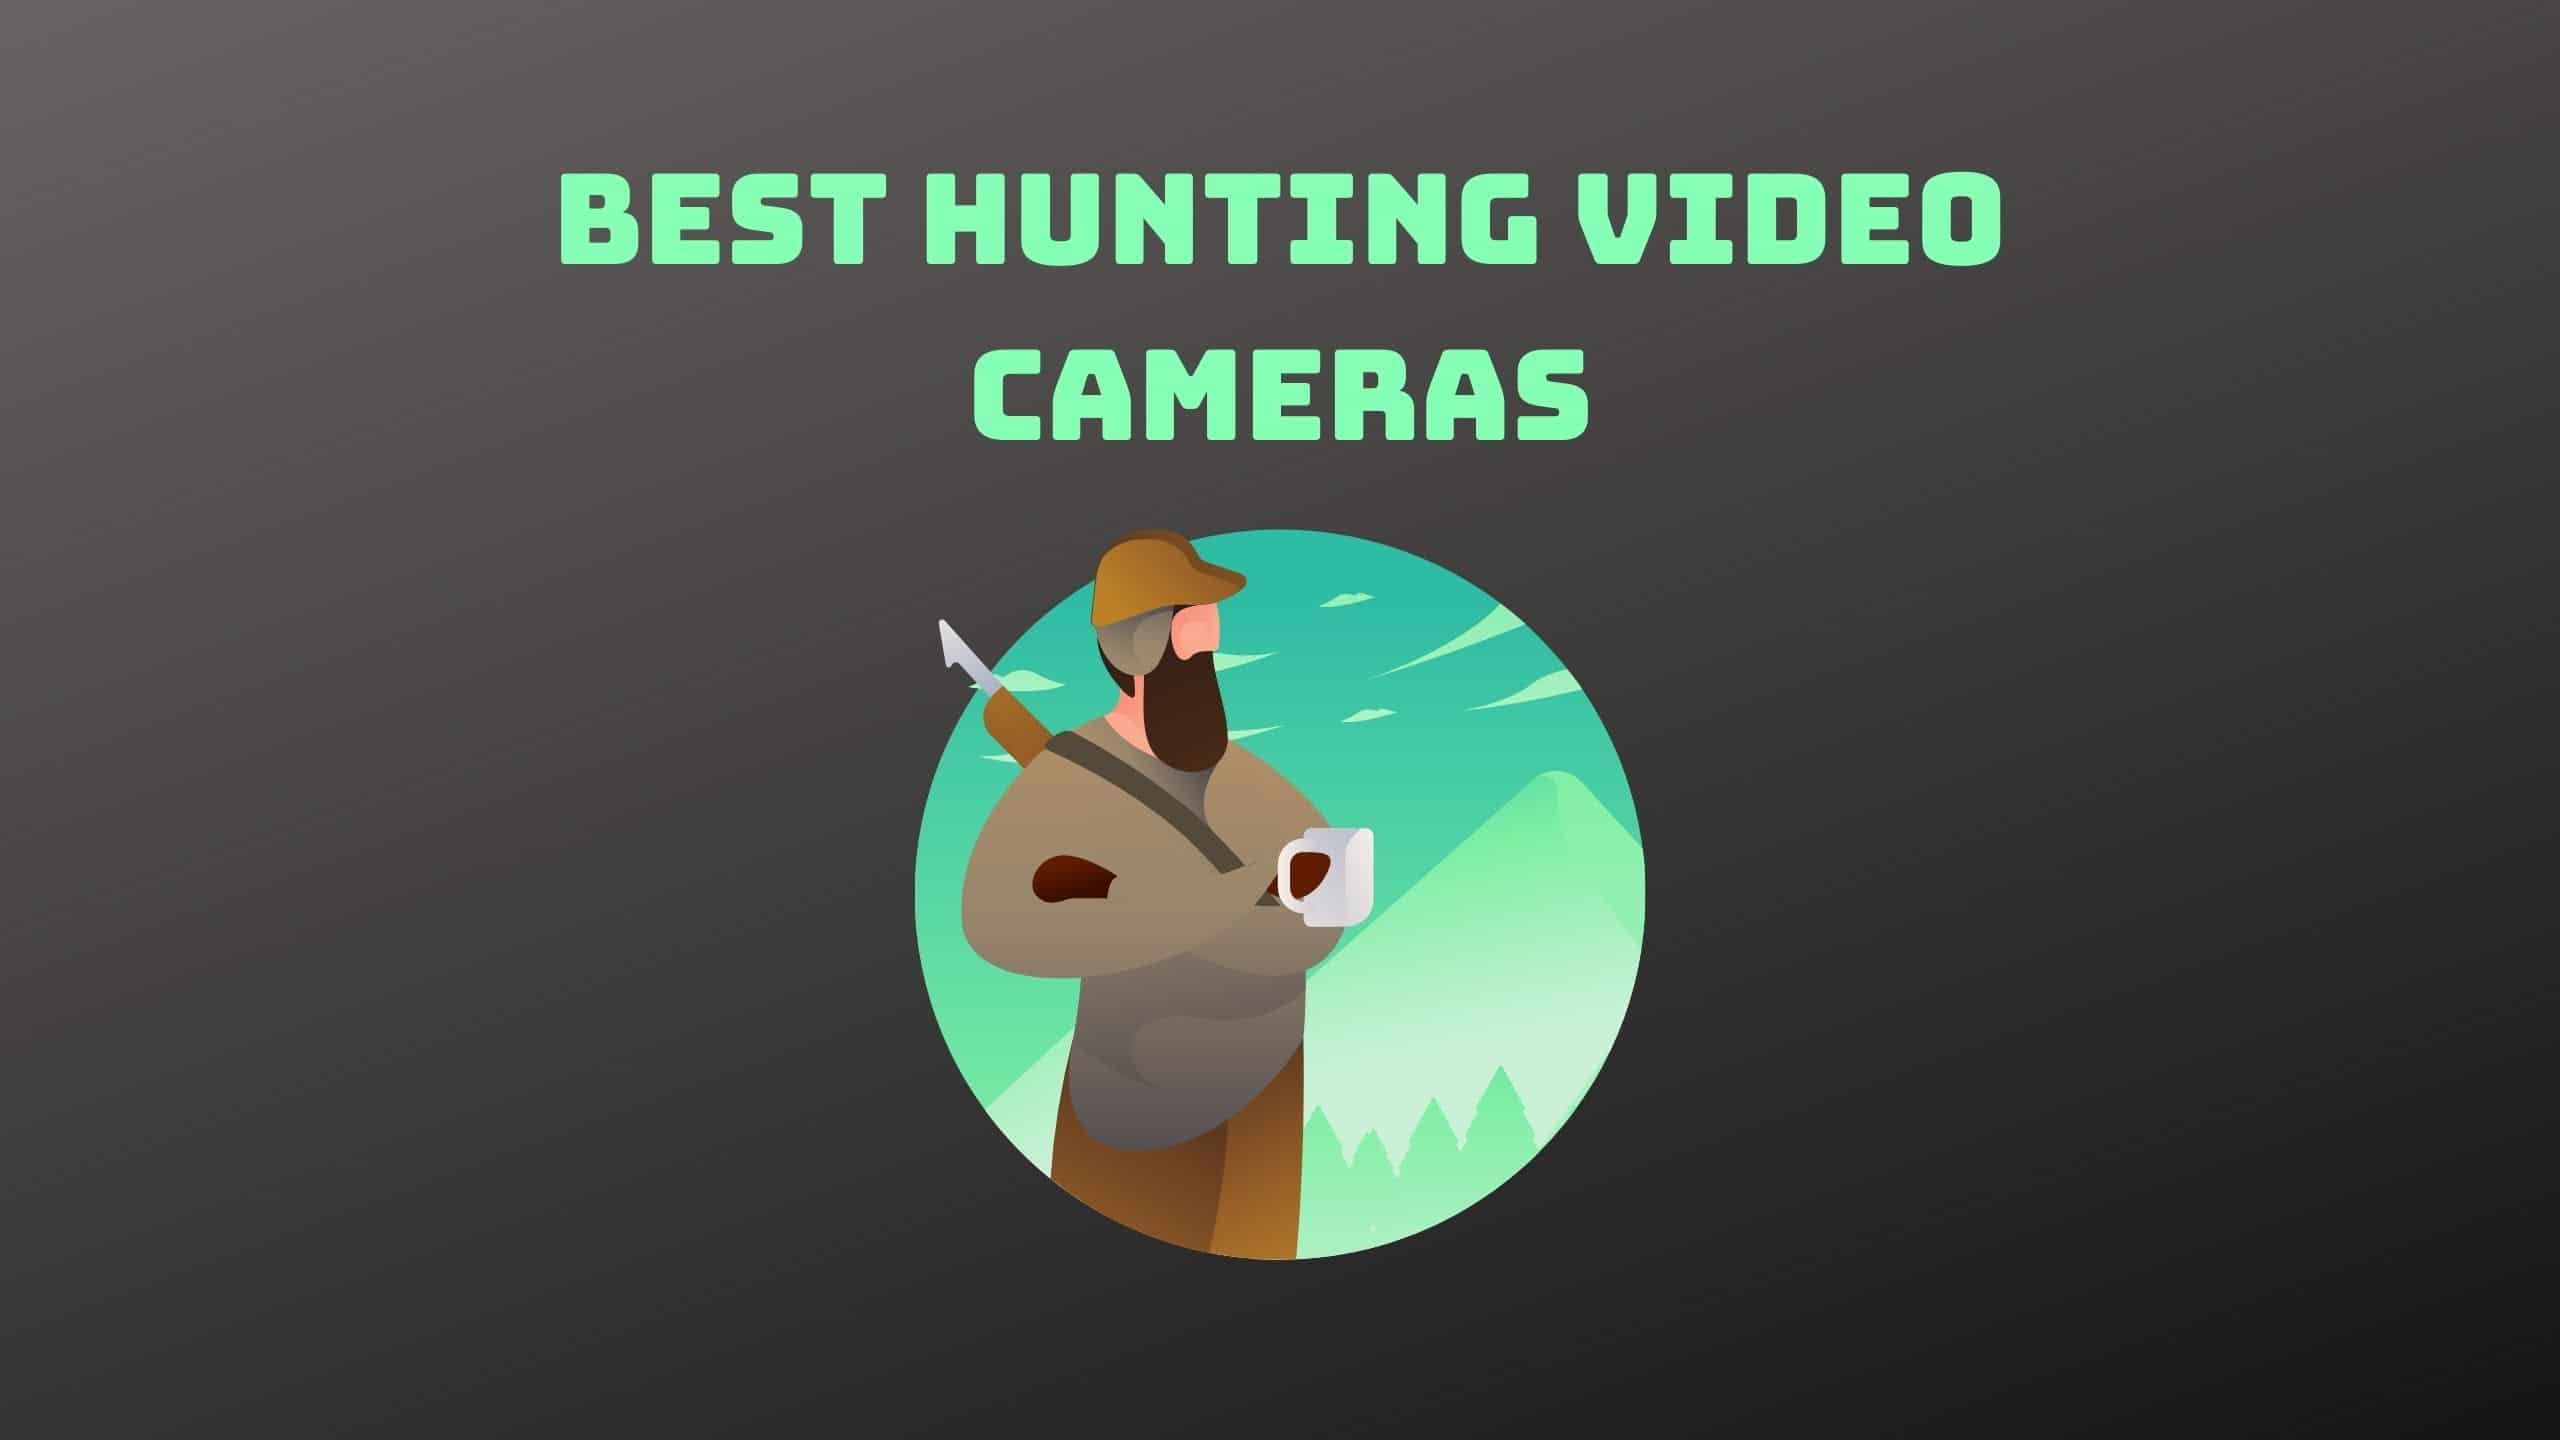 Best Hunting Video Cameras